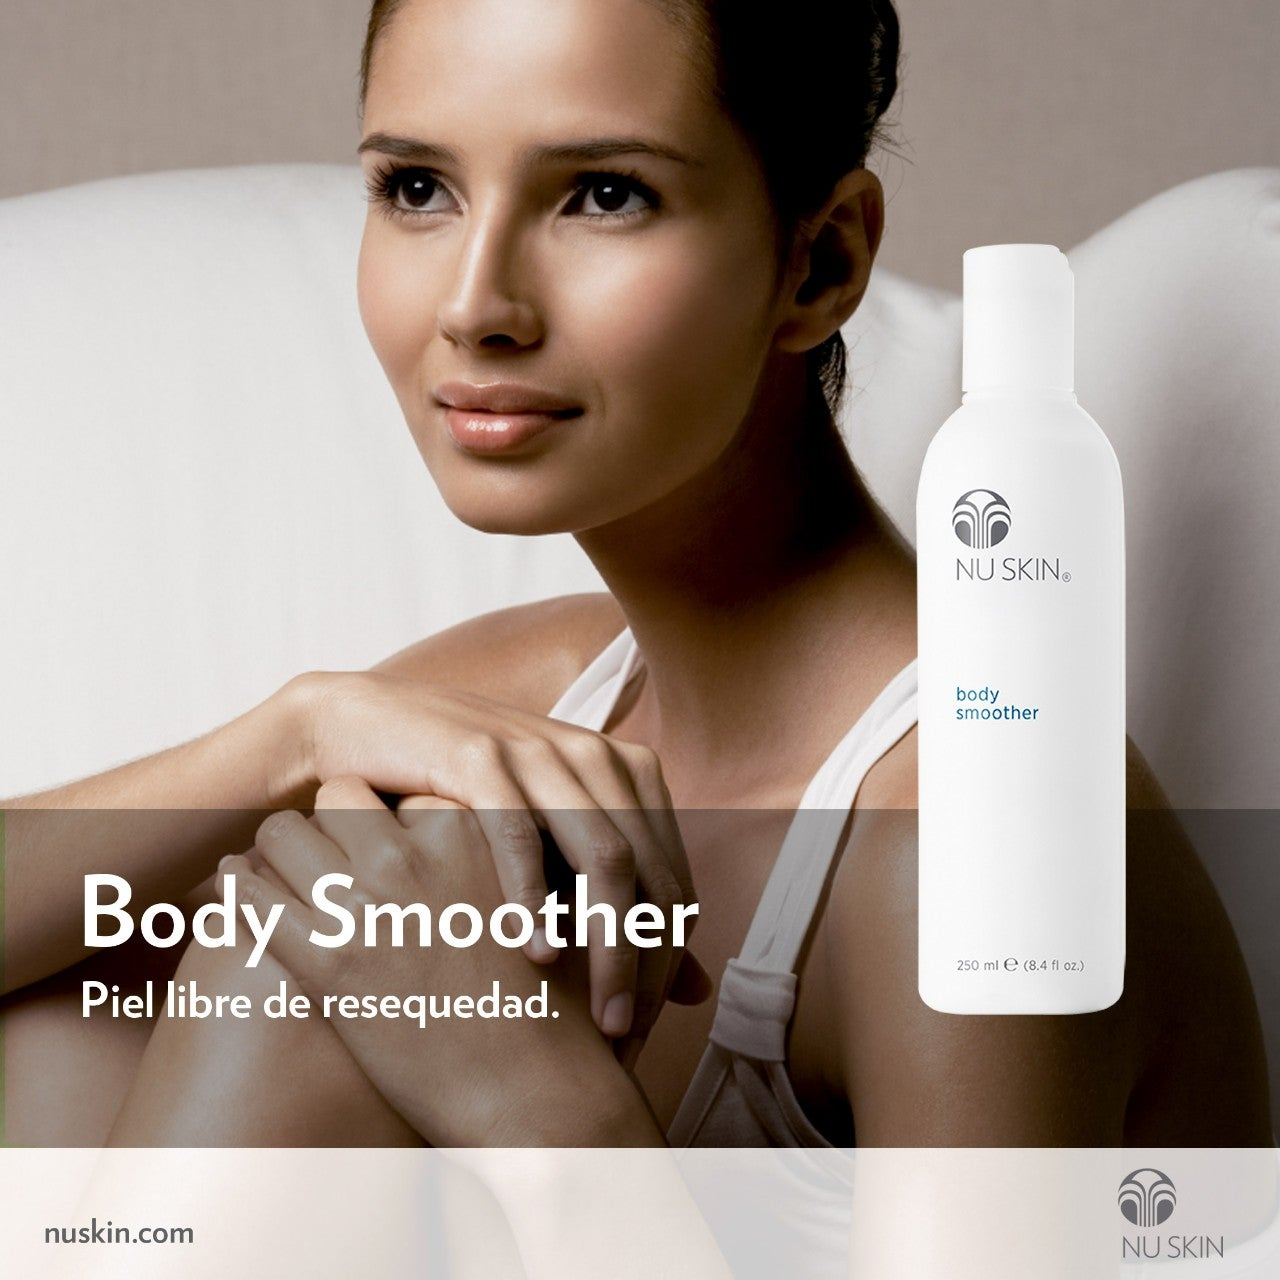 Body-Smoother_8-ar